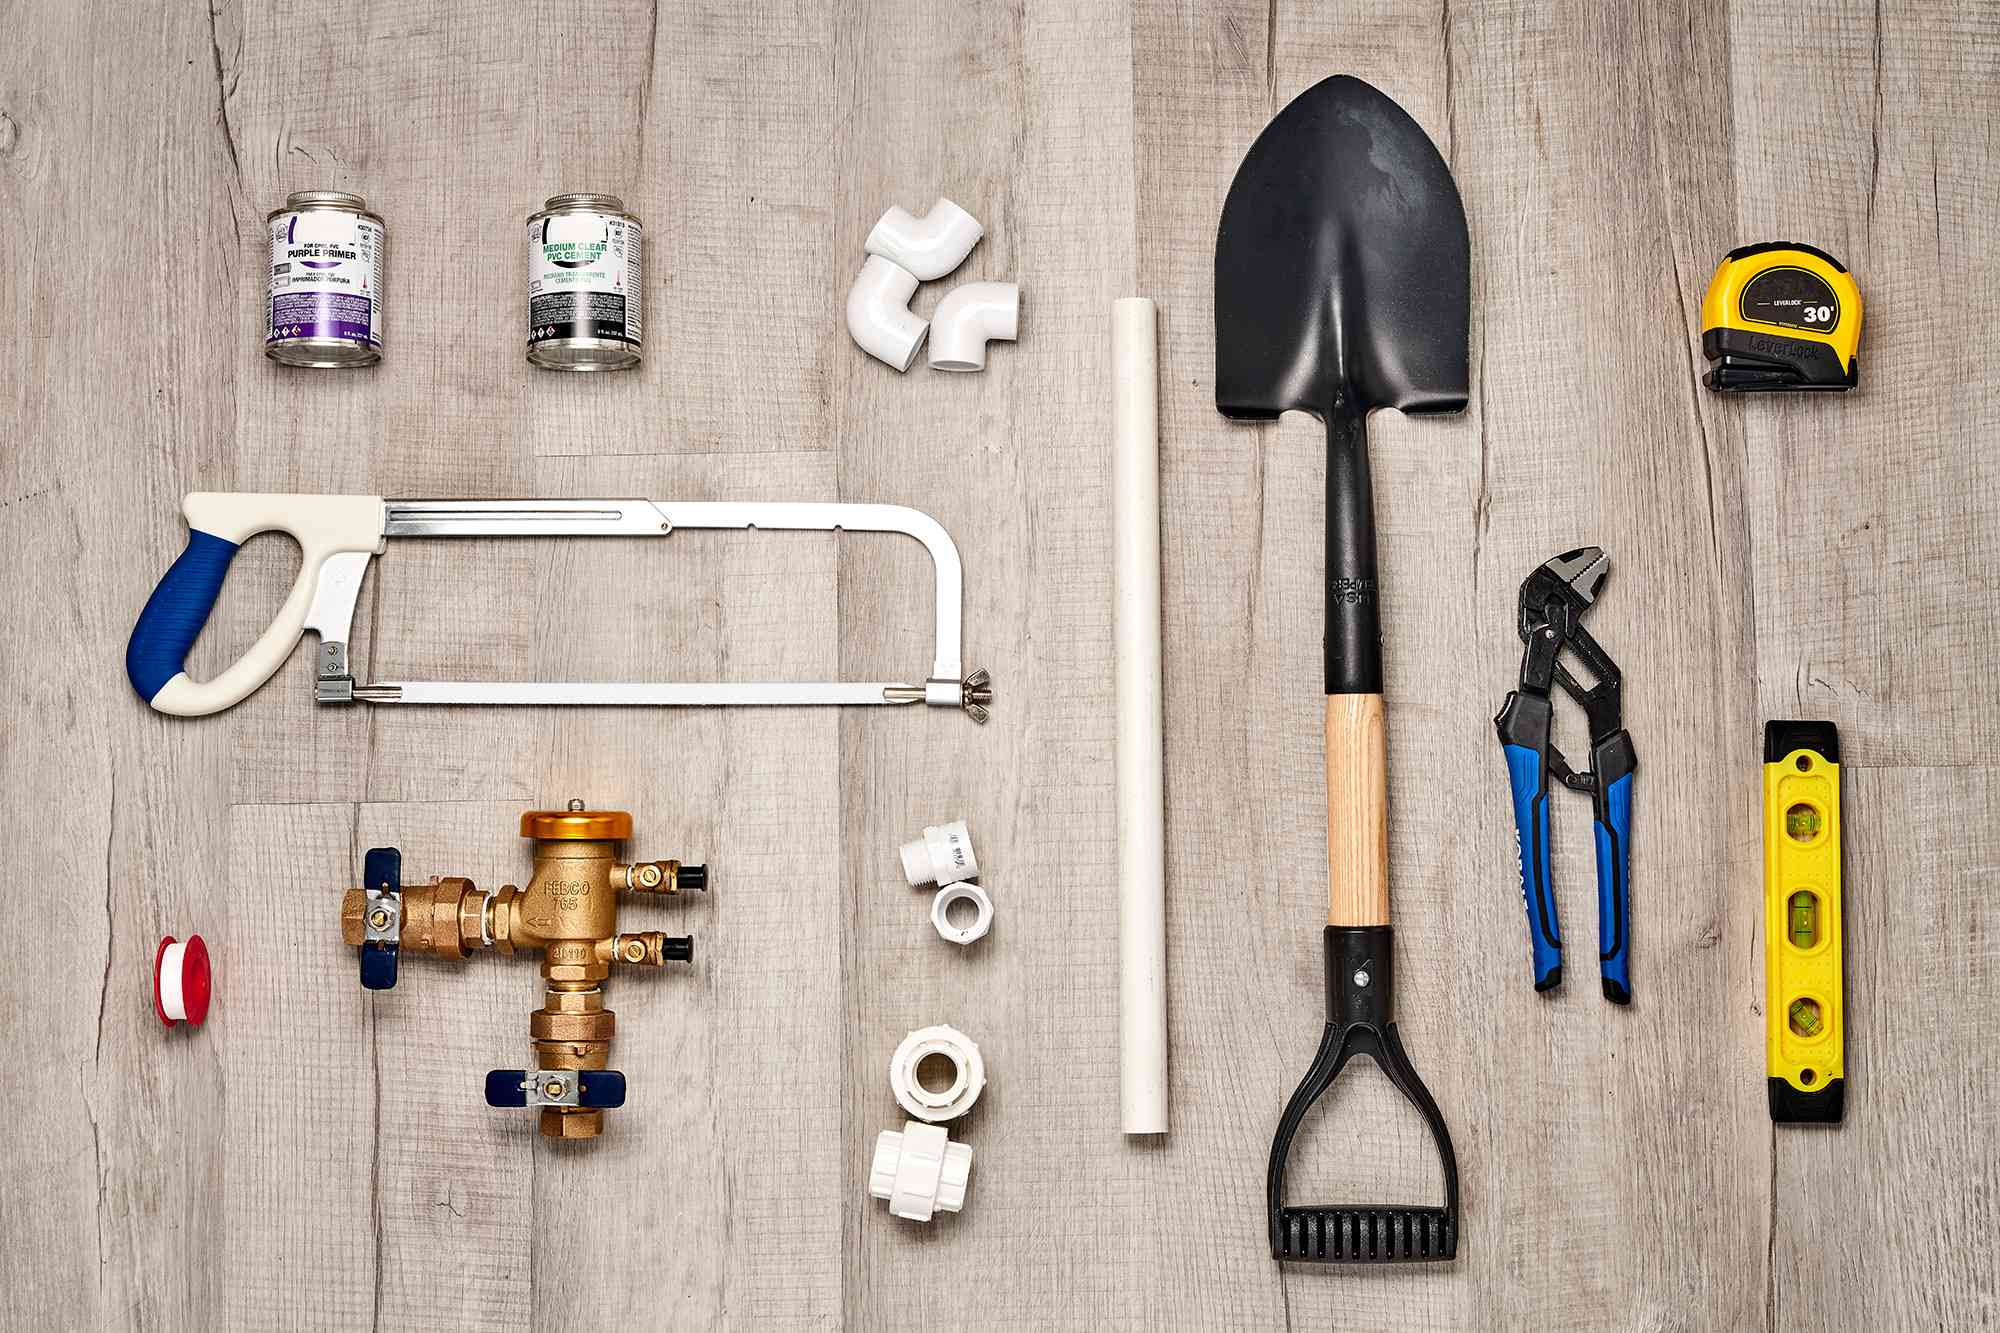 Materials and tools to install a pressure-vacuum breaker for irrigation system